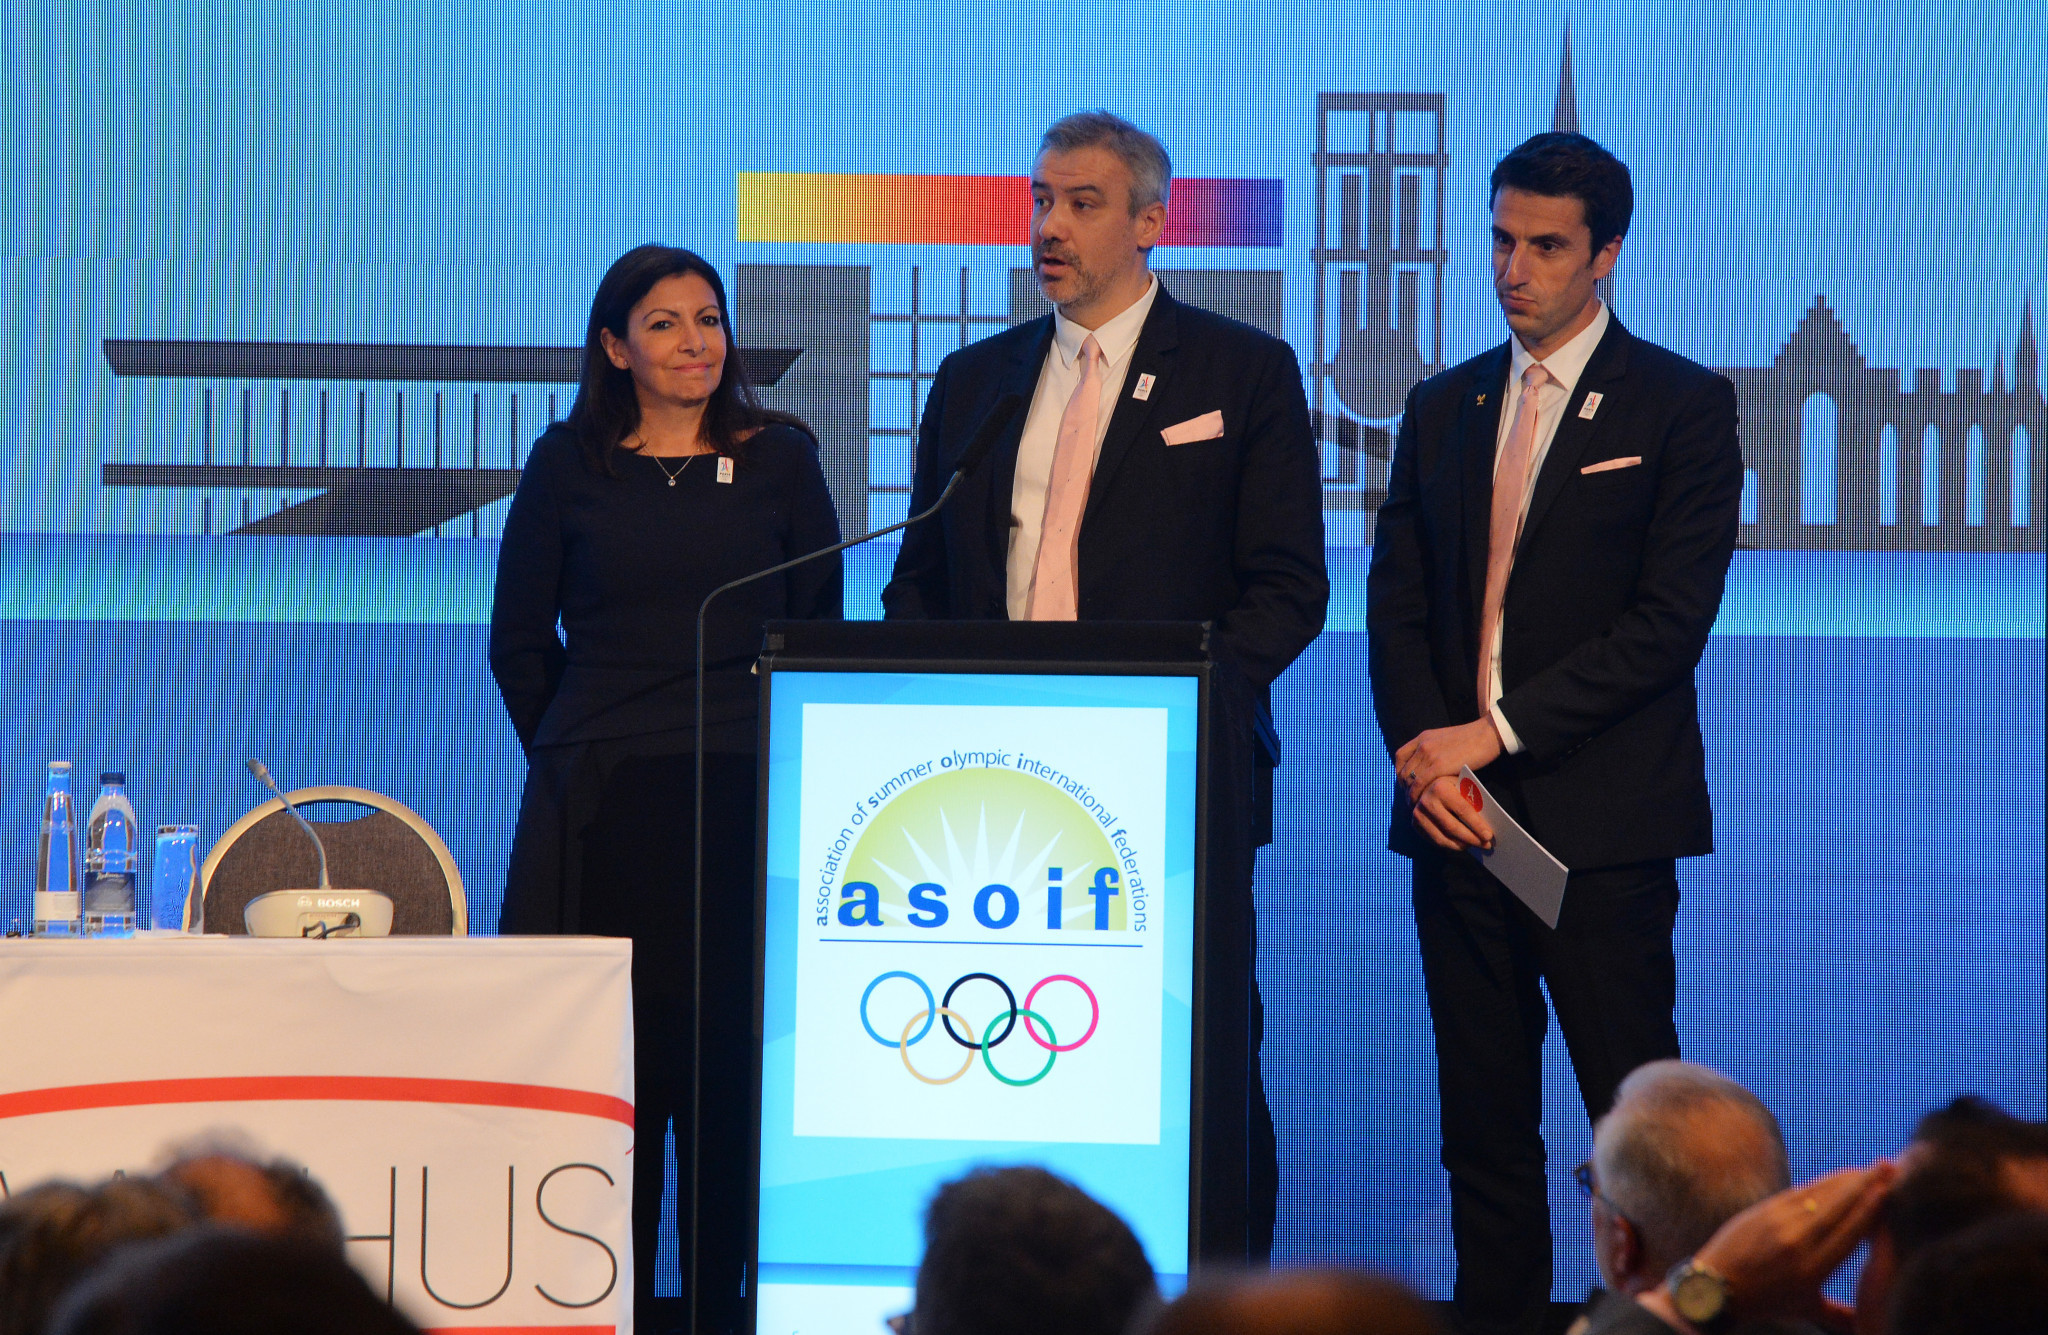 Paris 2024 President Tony Estanguet, right, and chief executive Etiene Thobois, second right, will conduct interviews to find key staff for the French capital's Organising Committee ©Getty Images